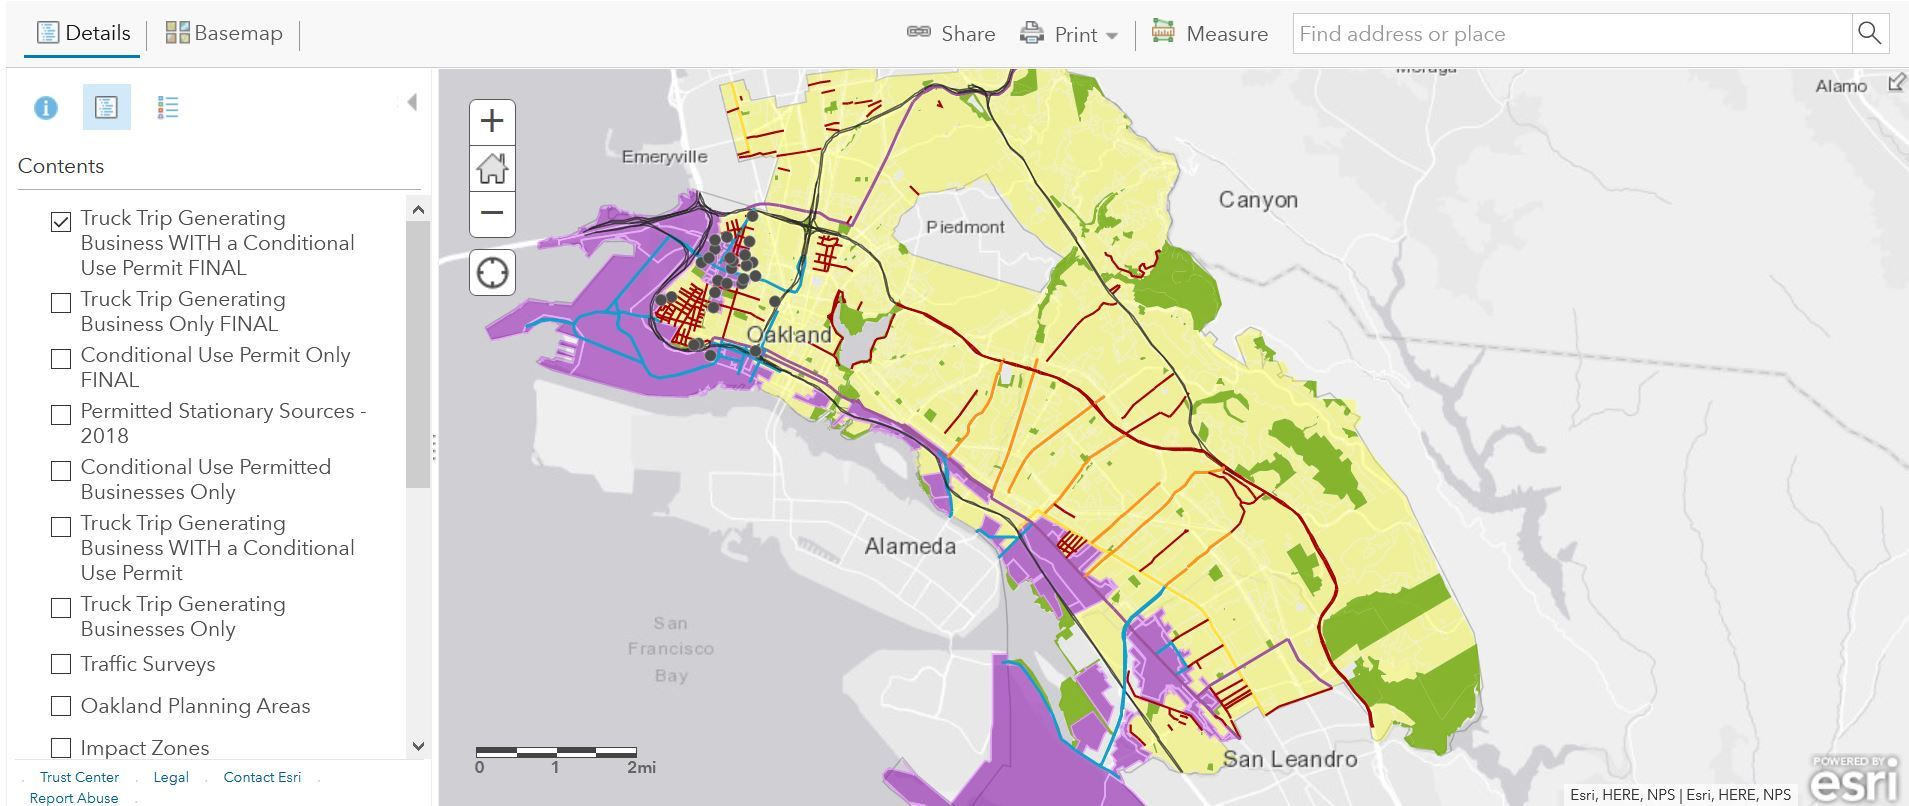 Zoning and Air Pollution Mapping Tool